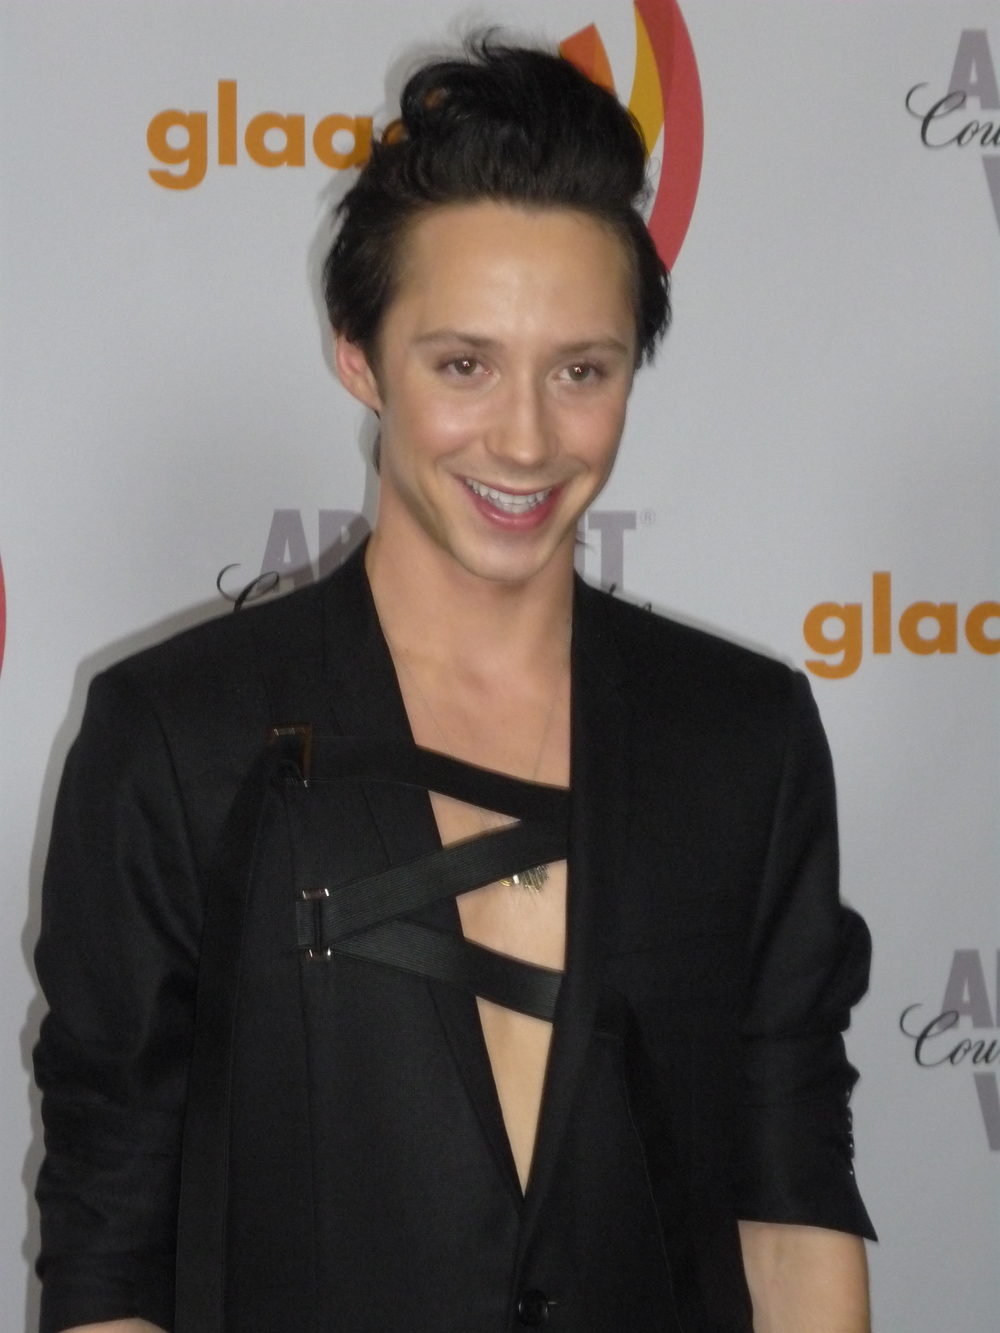 Johnny Weir, at the 2010 GLAAD Media Awards, has never been shy about making a fashion statement. Photograph by Greg Hernandez.